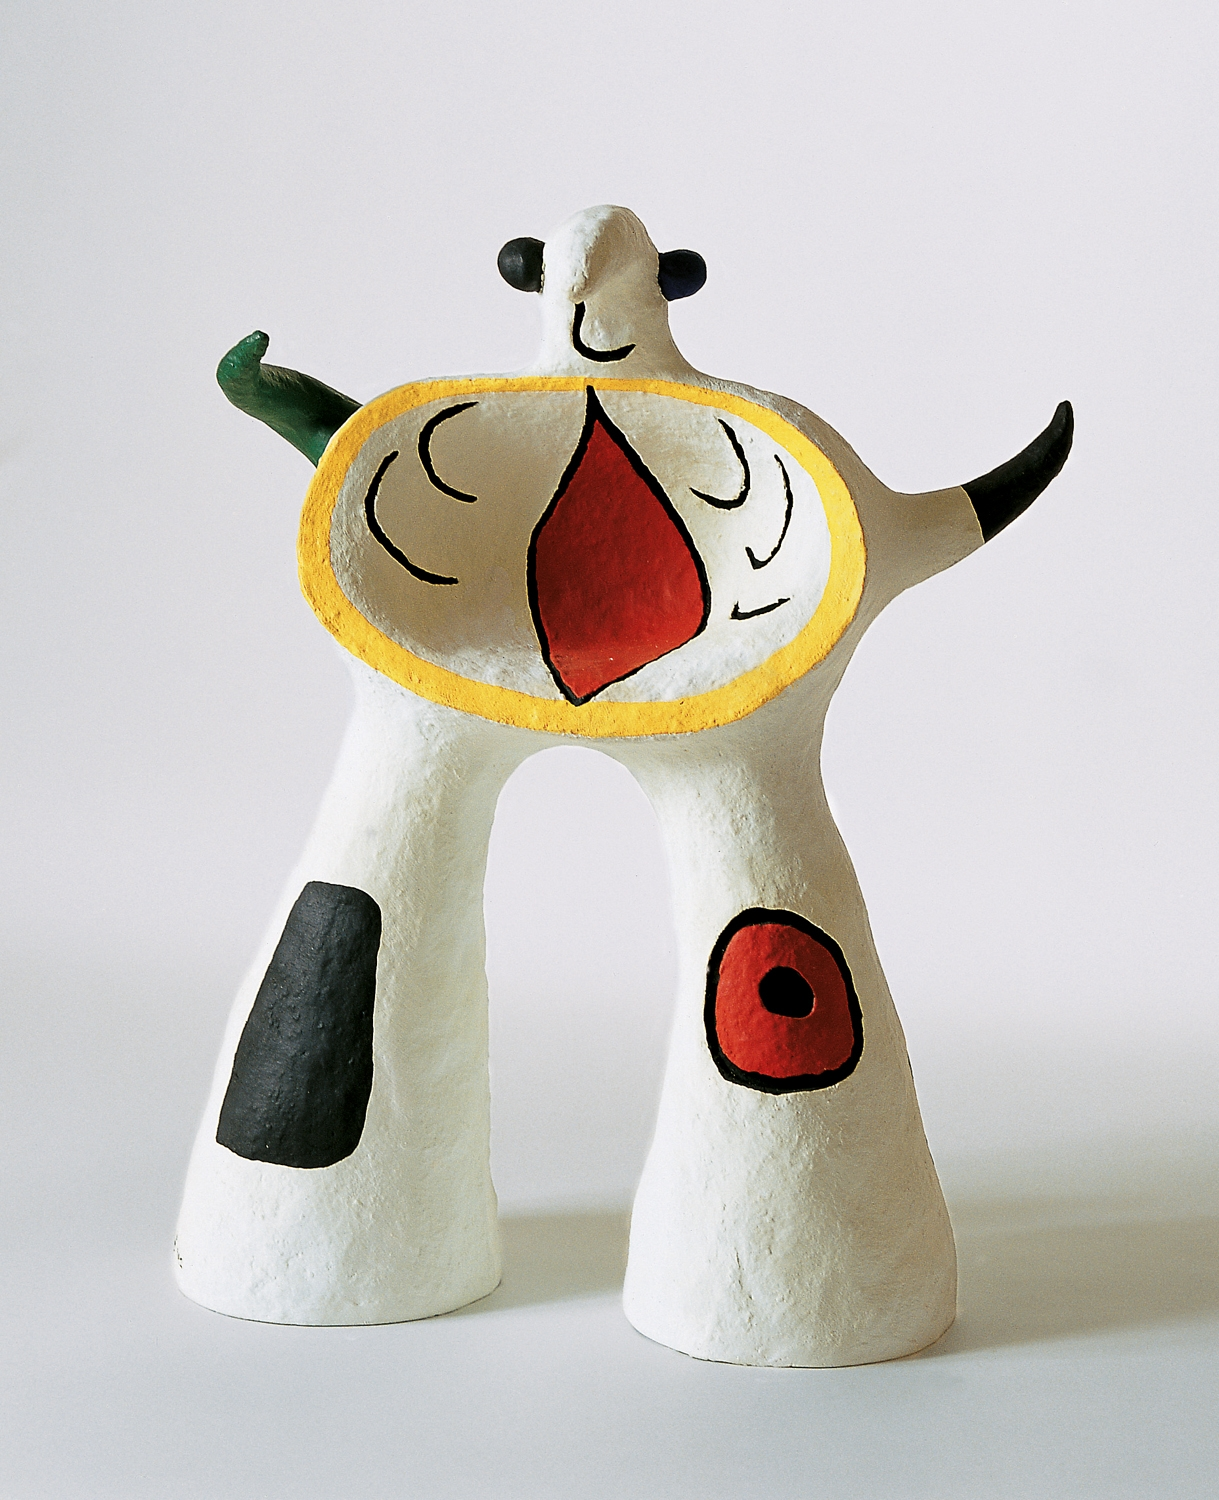 """Project for a monument"", 1972. 51 x 38,5 x 25 cm. © Successione Miró by SIAE 2014."